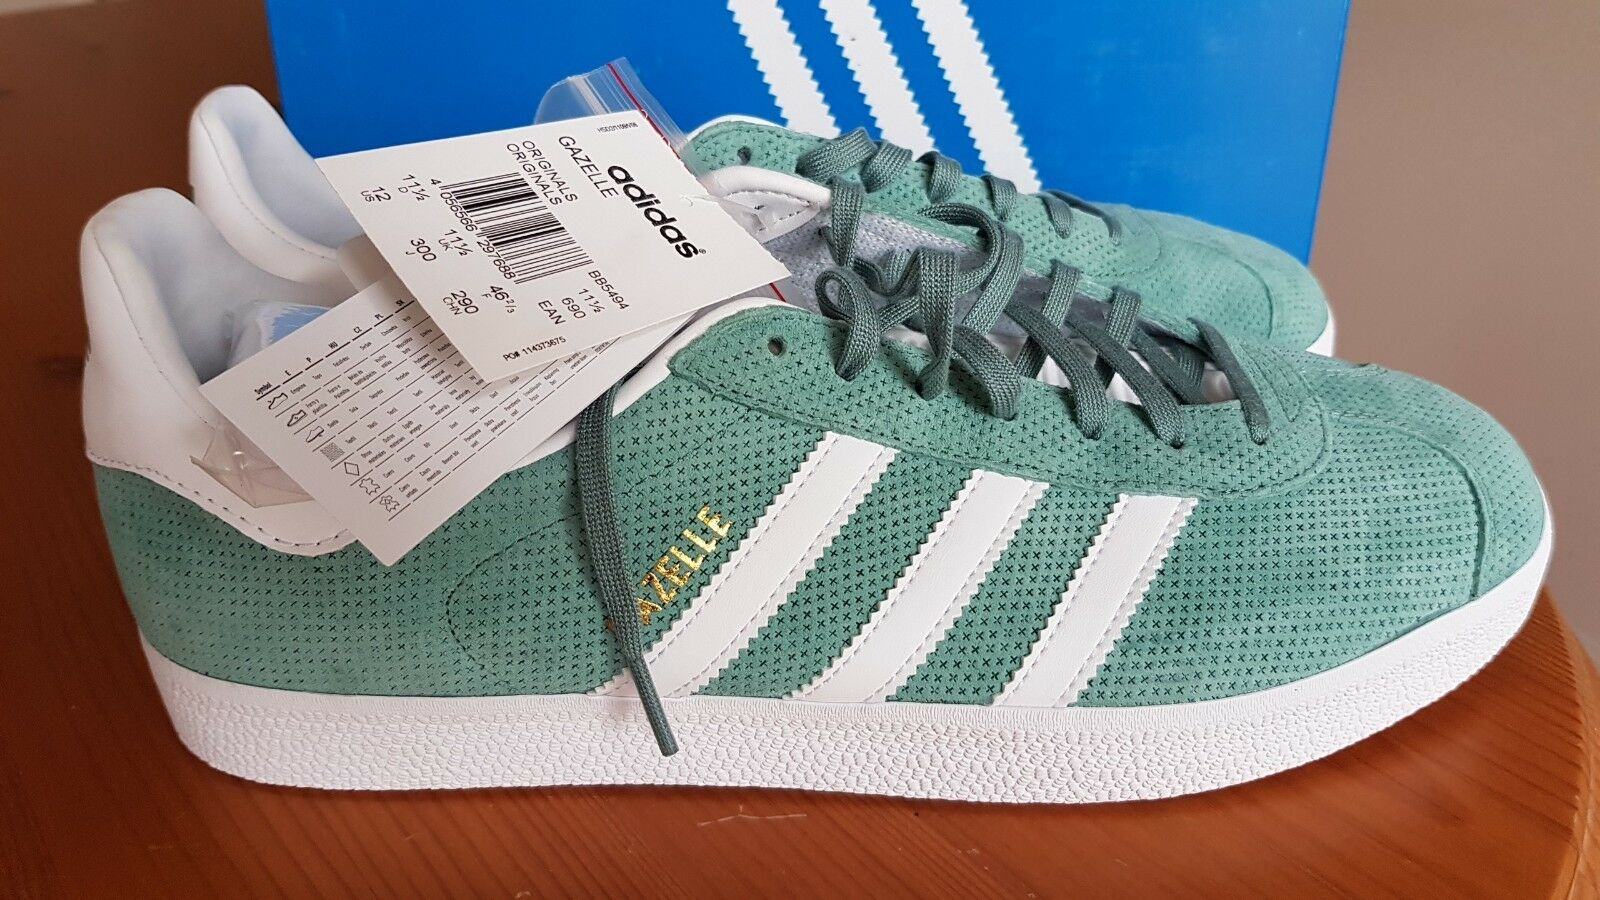 Men's Adidas Originals Gazelle Size 11(EUR 46) BNWT  BRAND NEW IN BOX